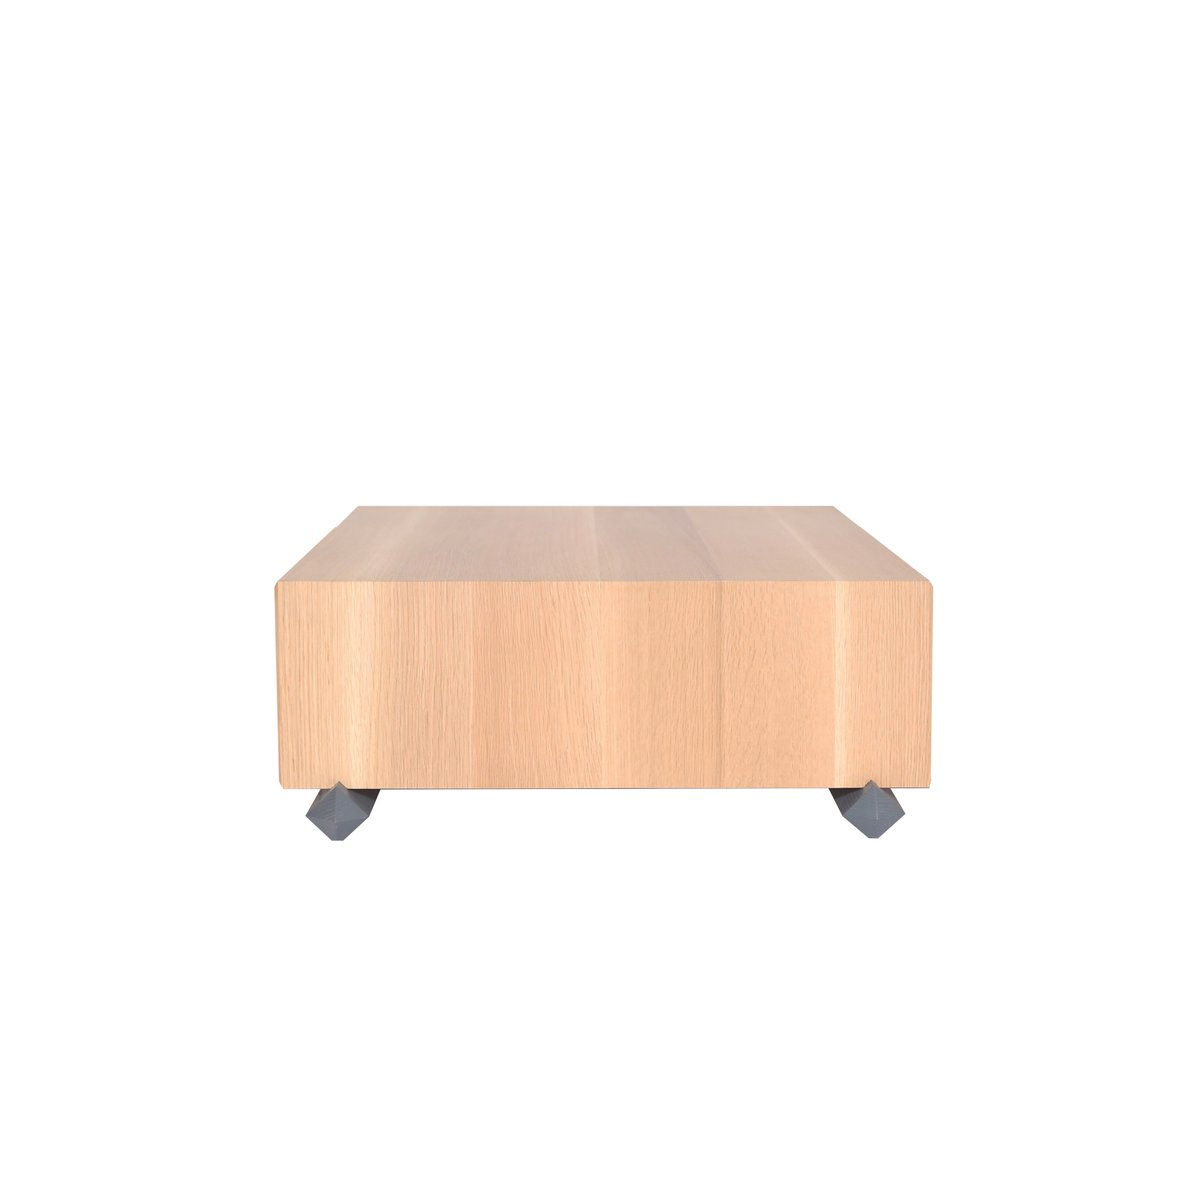 Stack Storage Wood Coffee Table with Drawers from Debra Folz